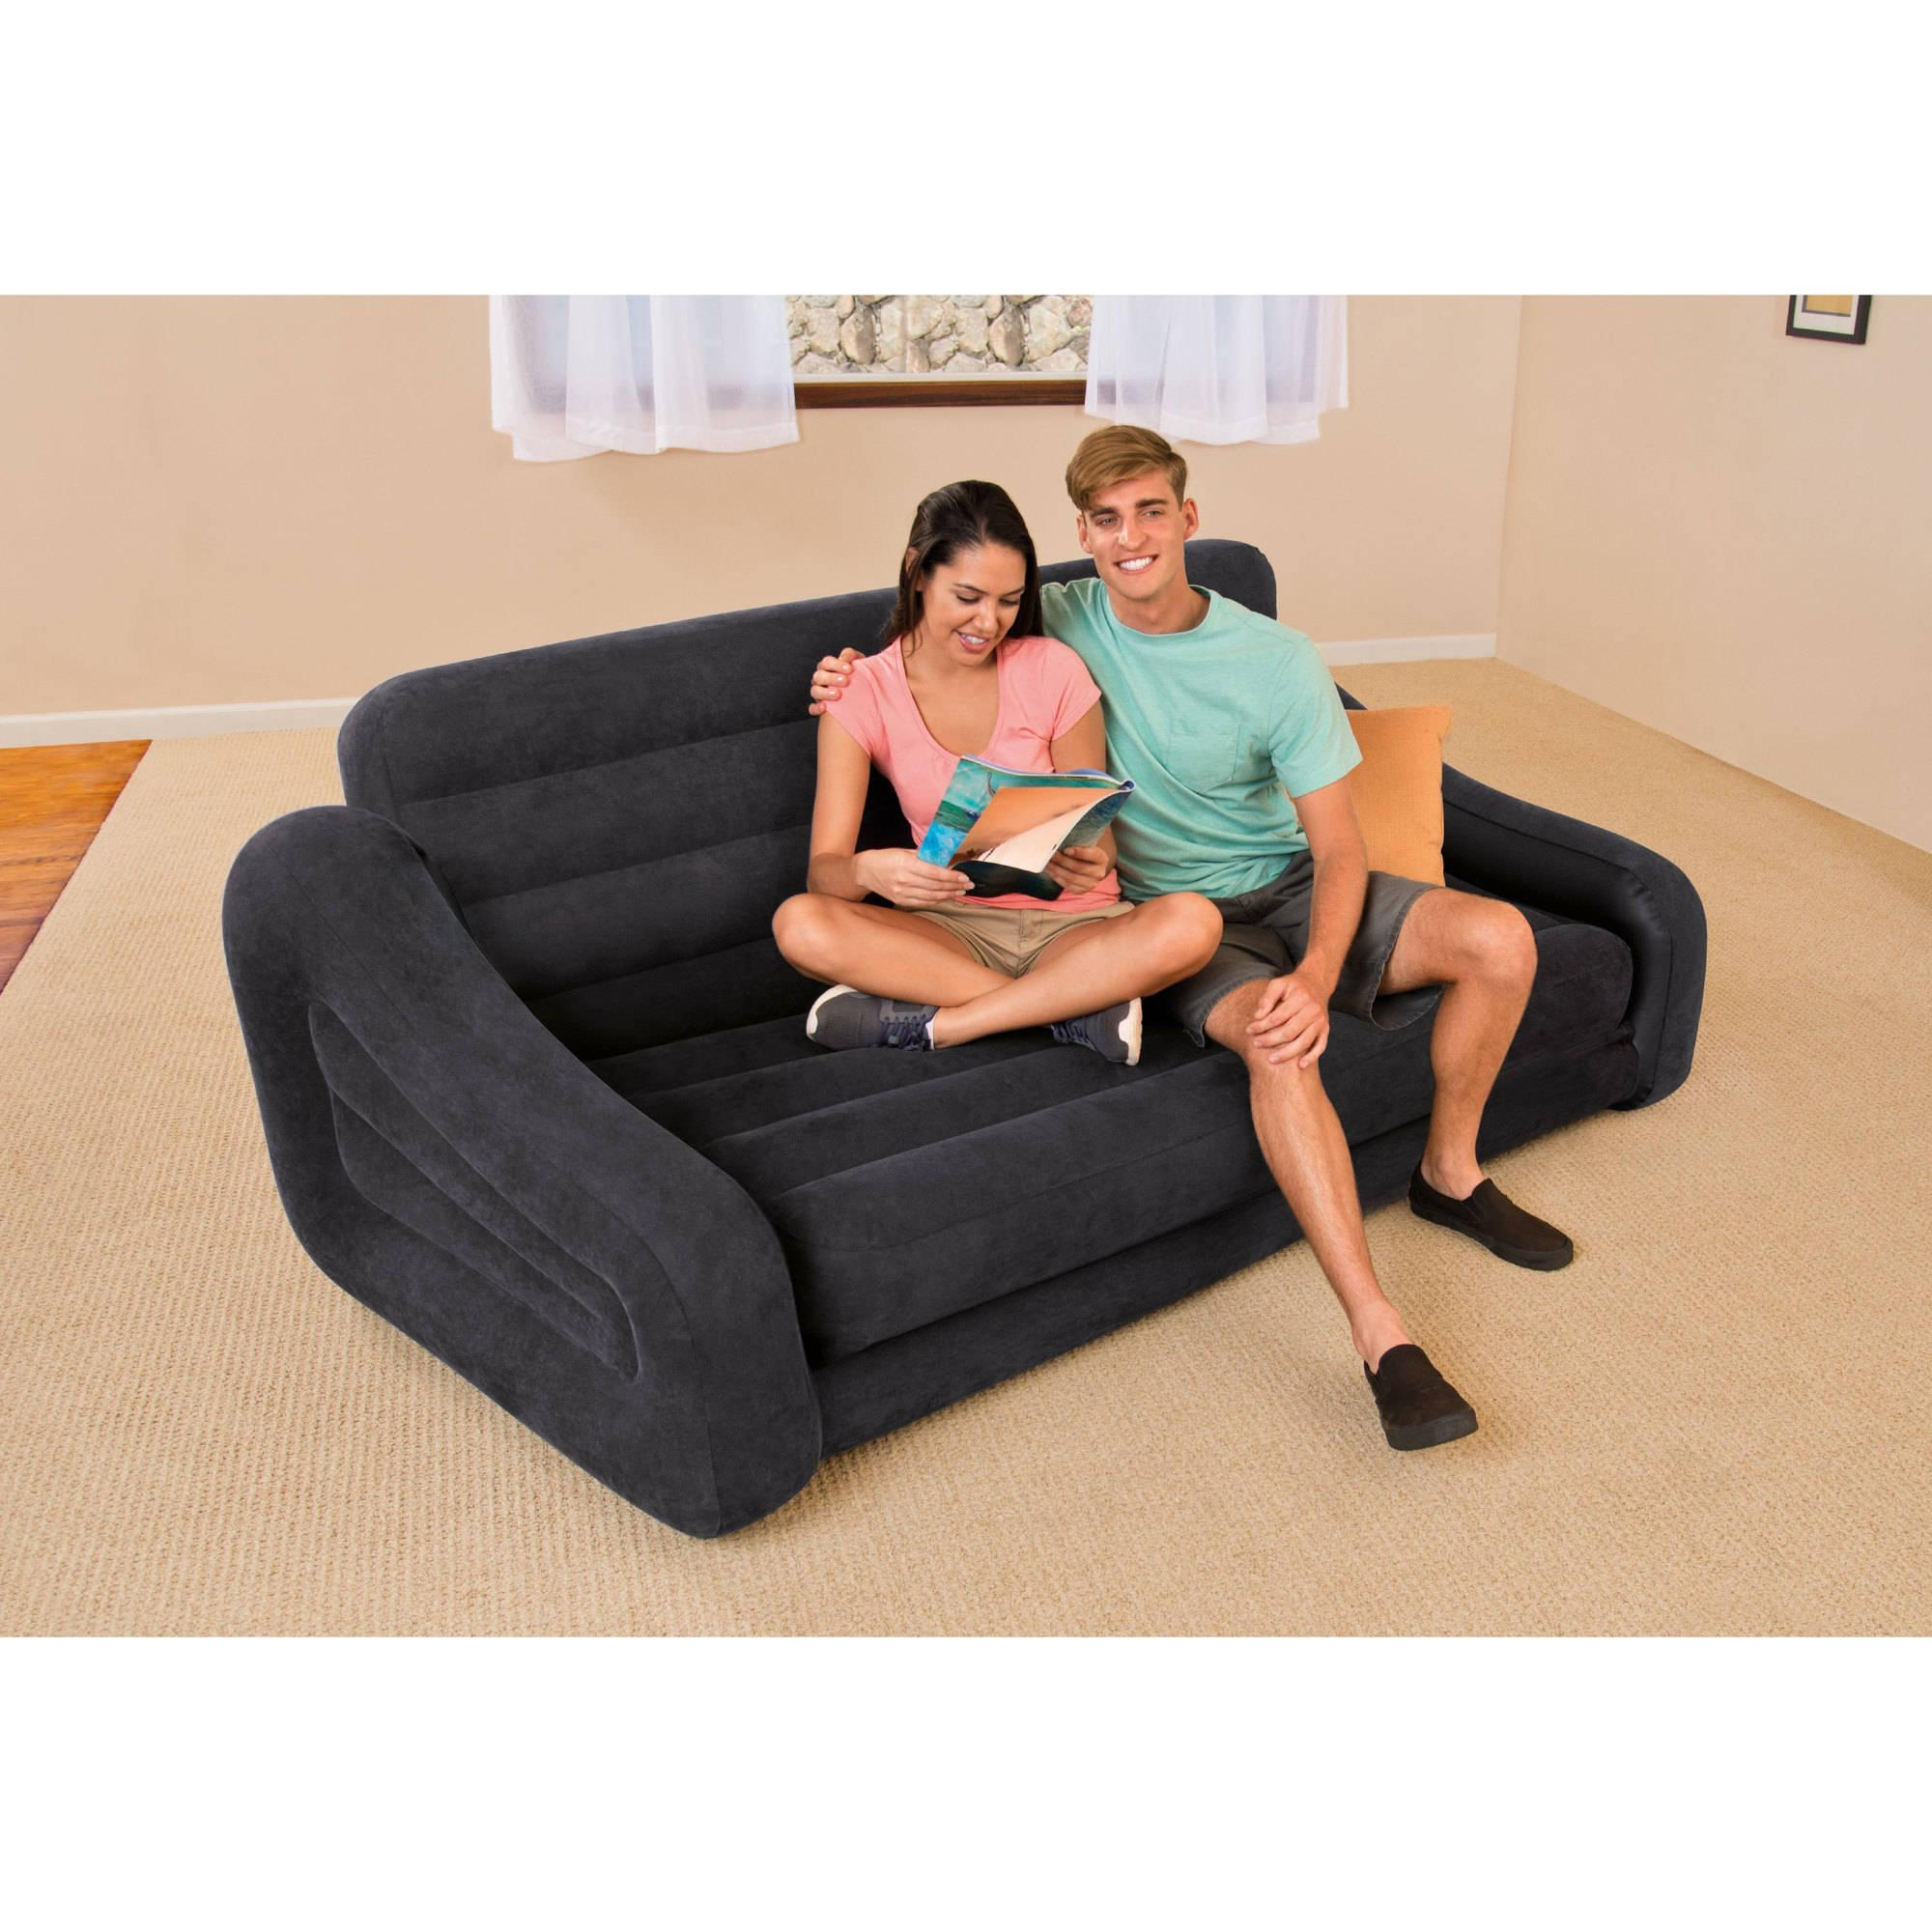 Intex Queen Inflatable Pull Out Sofa Bed – Walmart For Intex Air Sofa Beds (View 6 of 20)